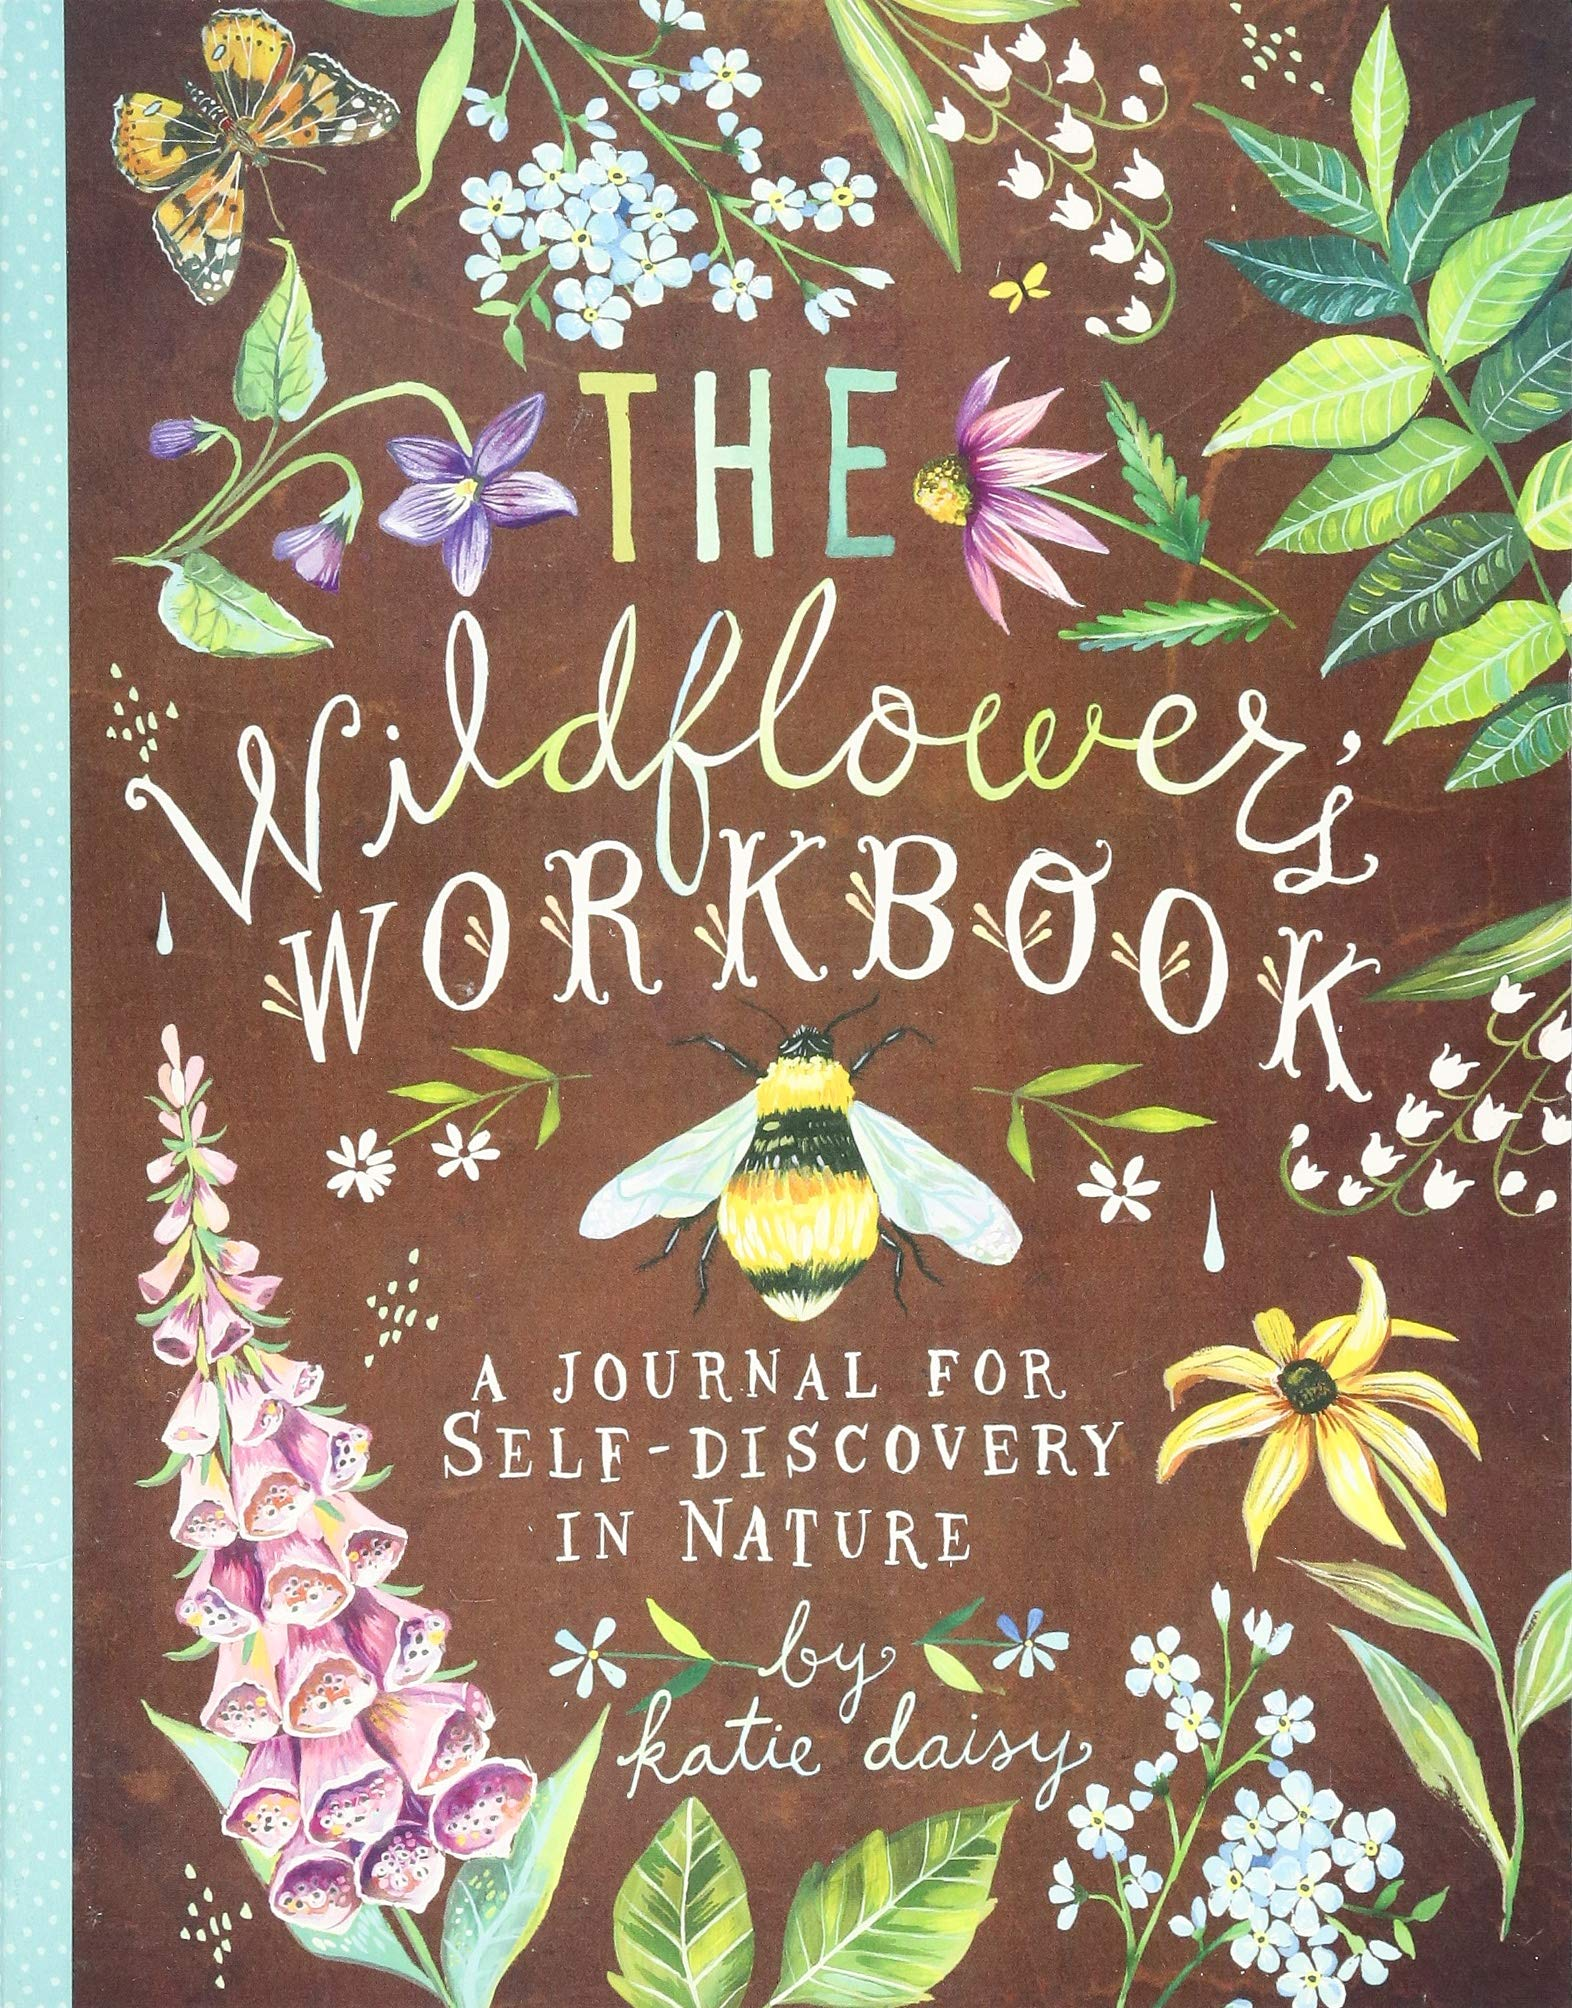 Image for The Wildflower's Workbook: A Journal for Self-Discovery in Nature (Nature Journals, Self-Discovery Journals, Books about Mindfulness, Creativity Books, Guided Journal)